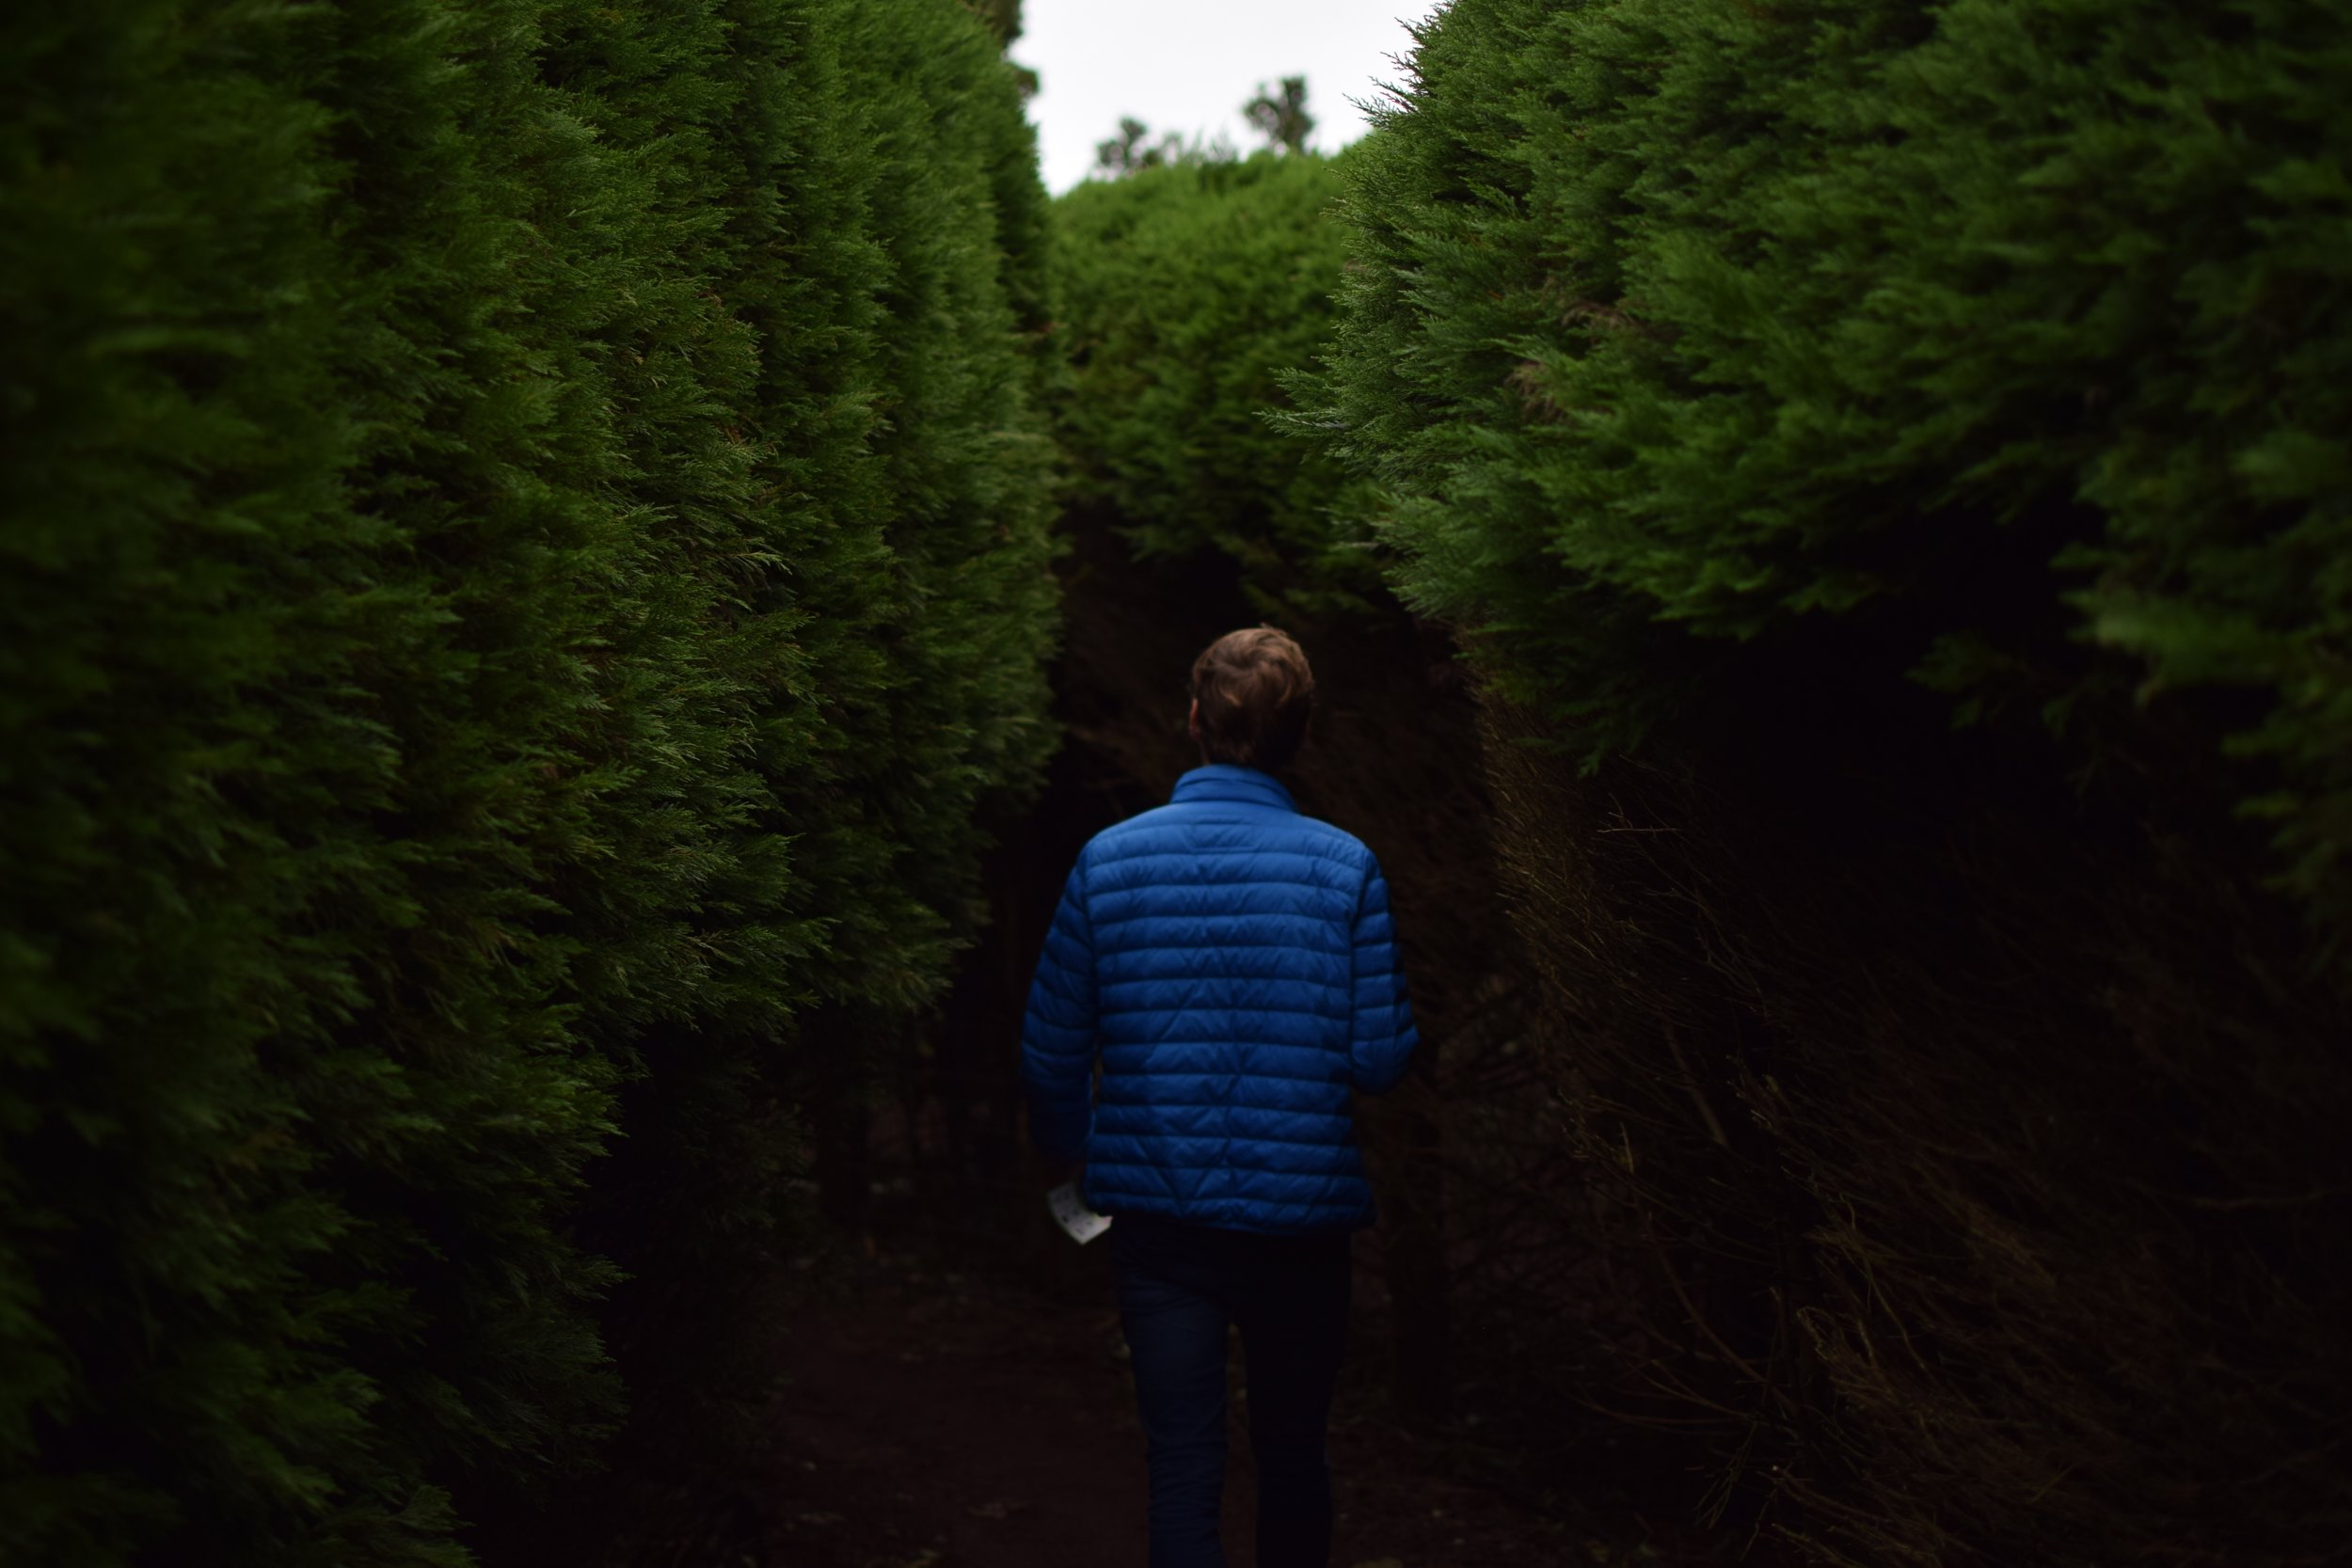 lost in hedges